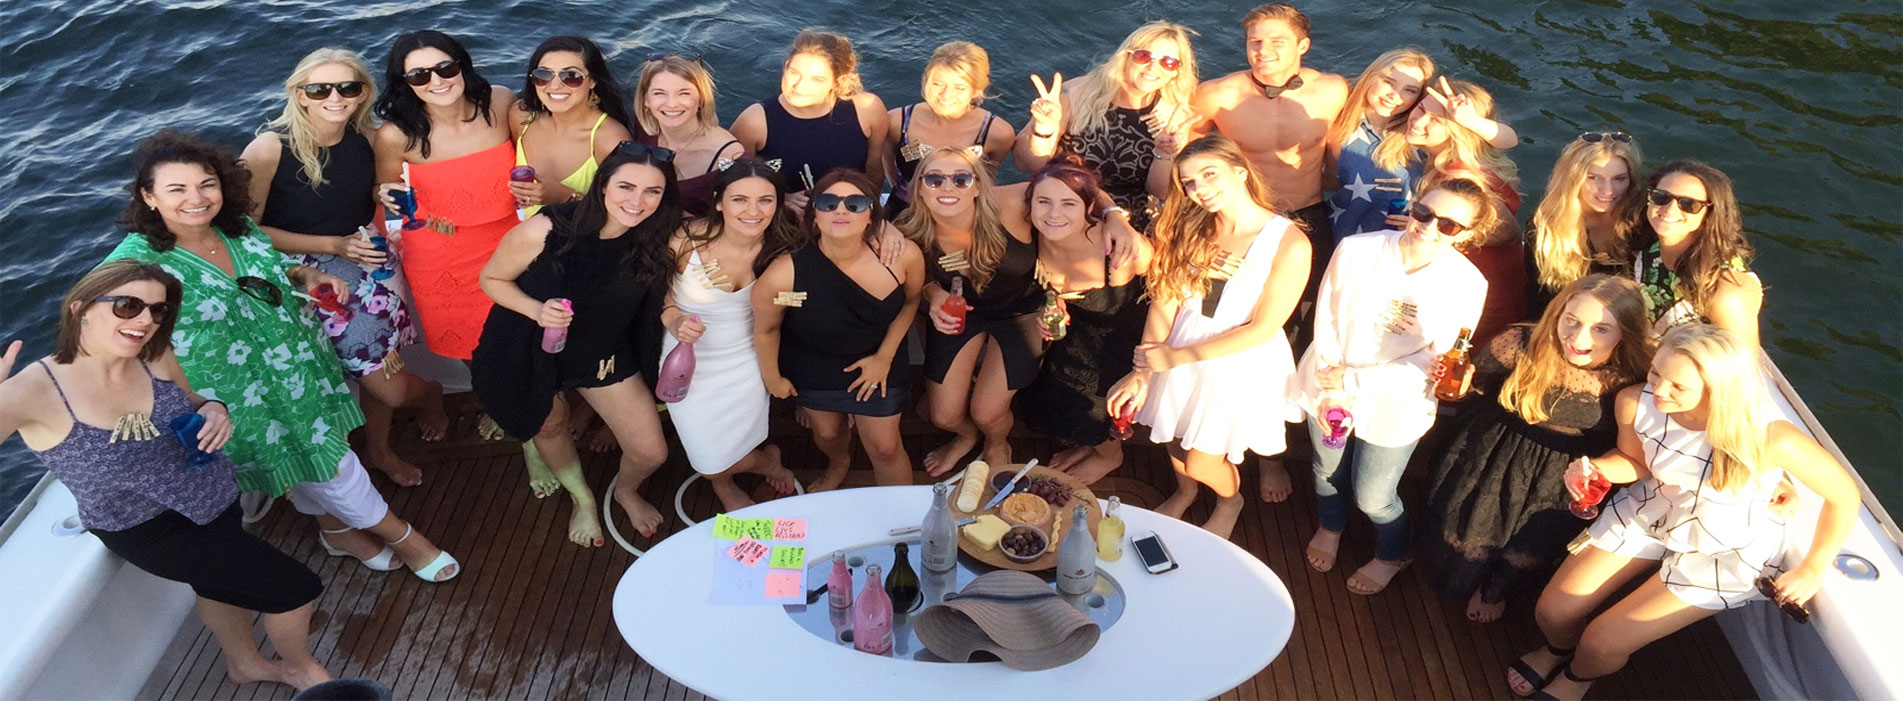 JUDE-boat-hire-perth-hens-party-back-deck